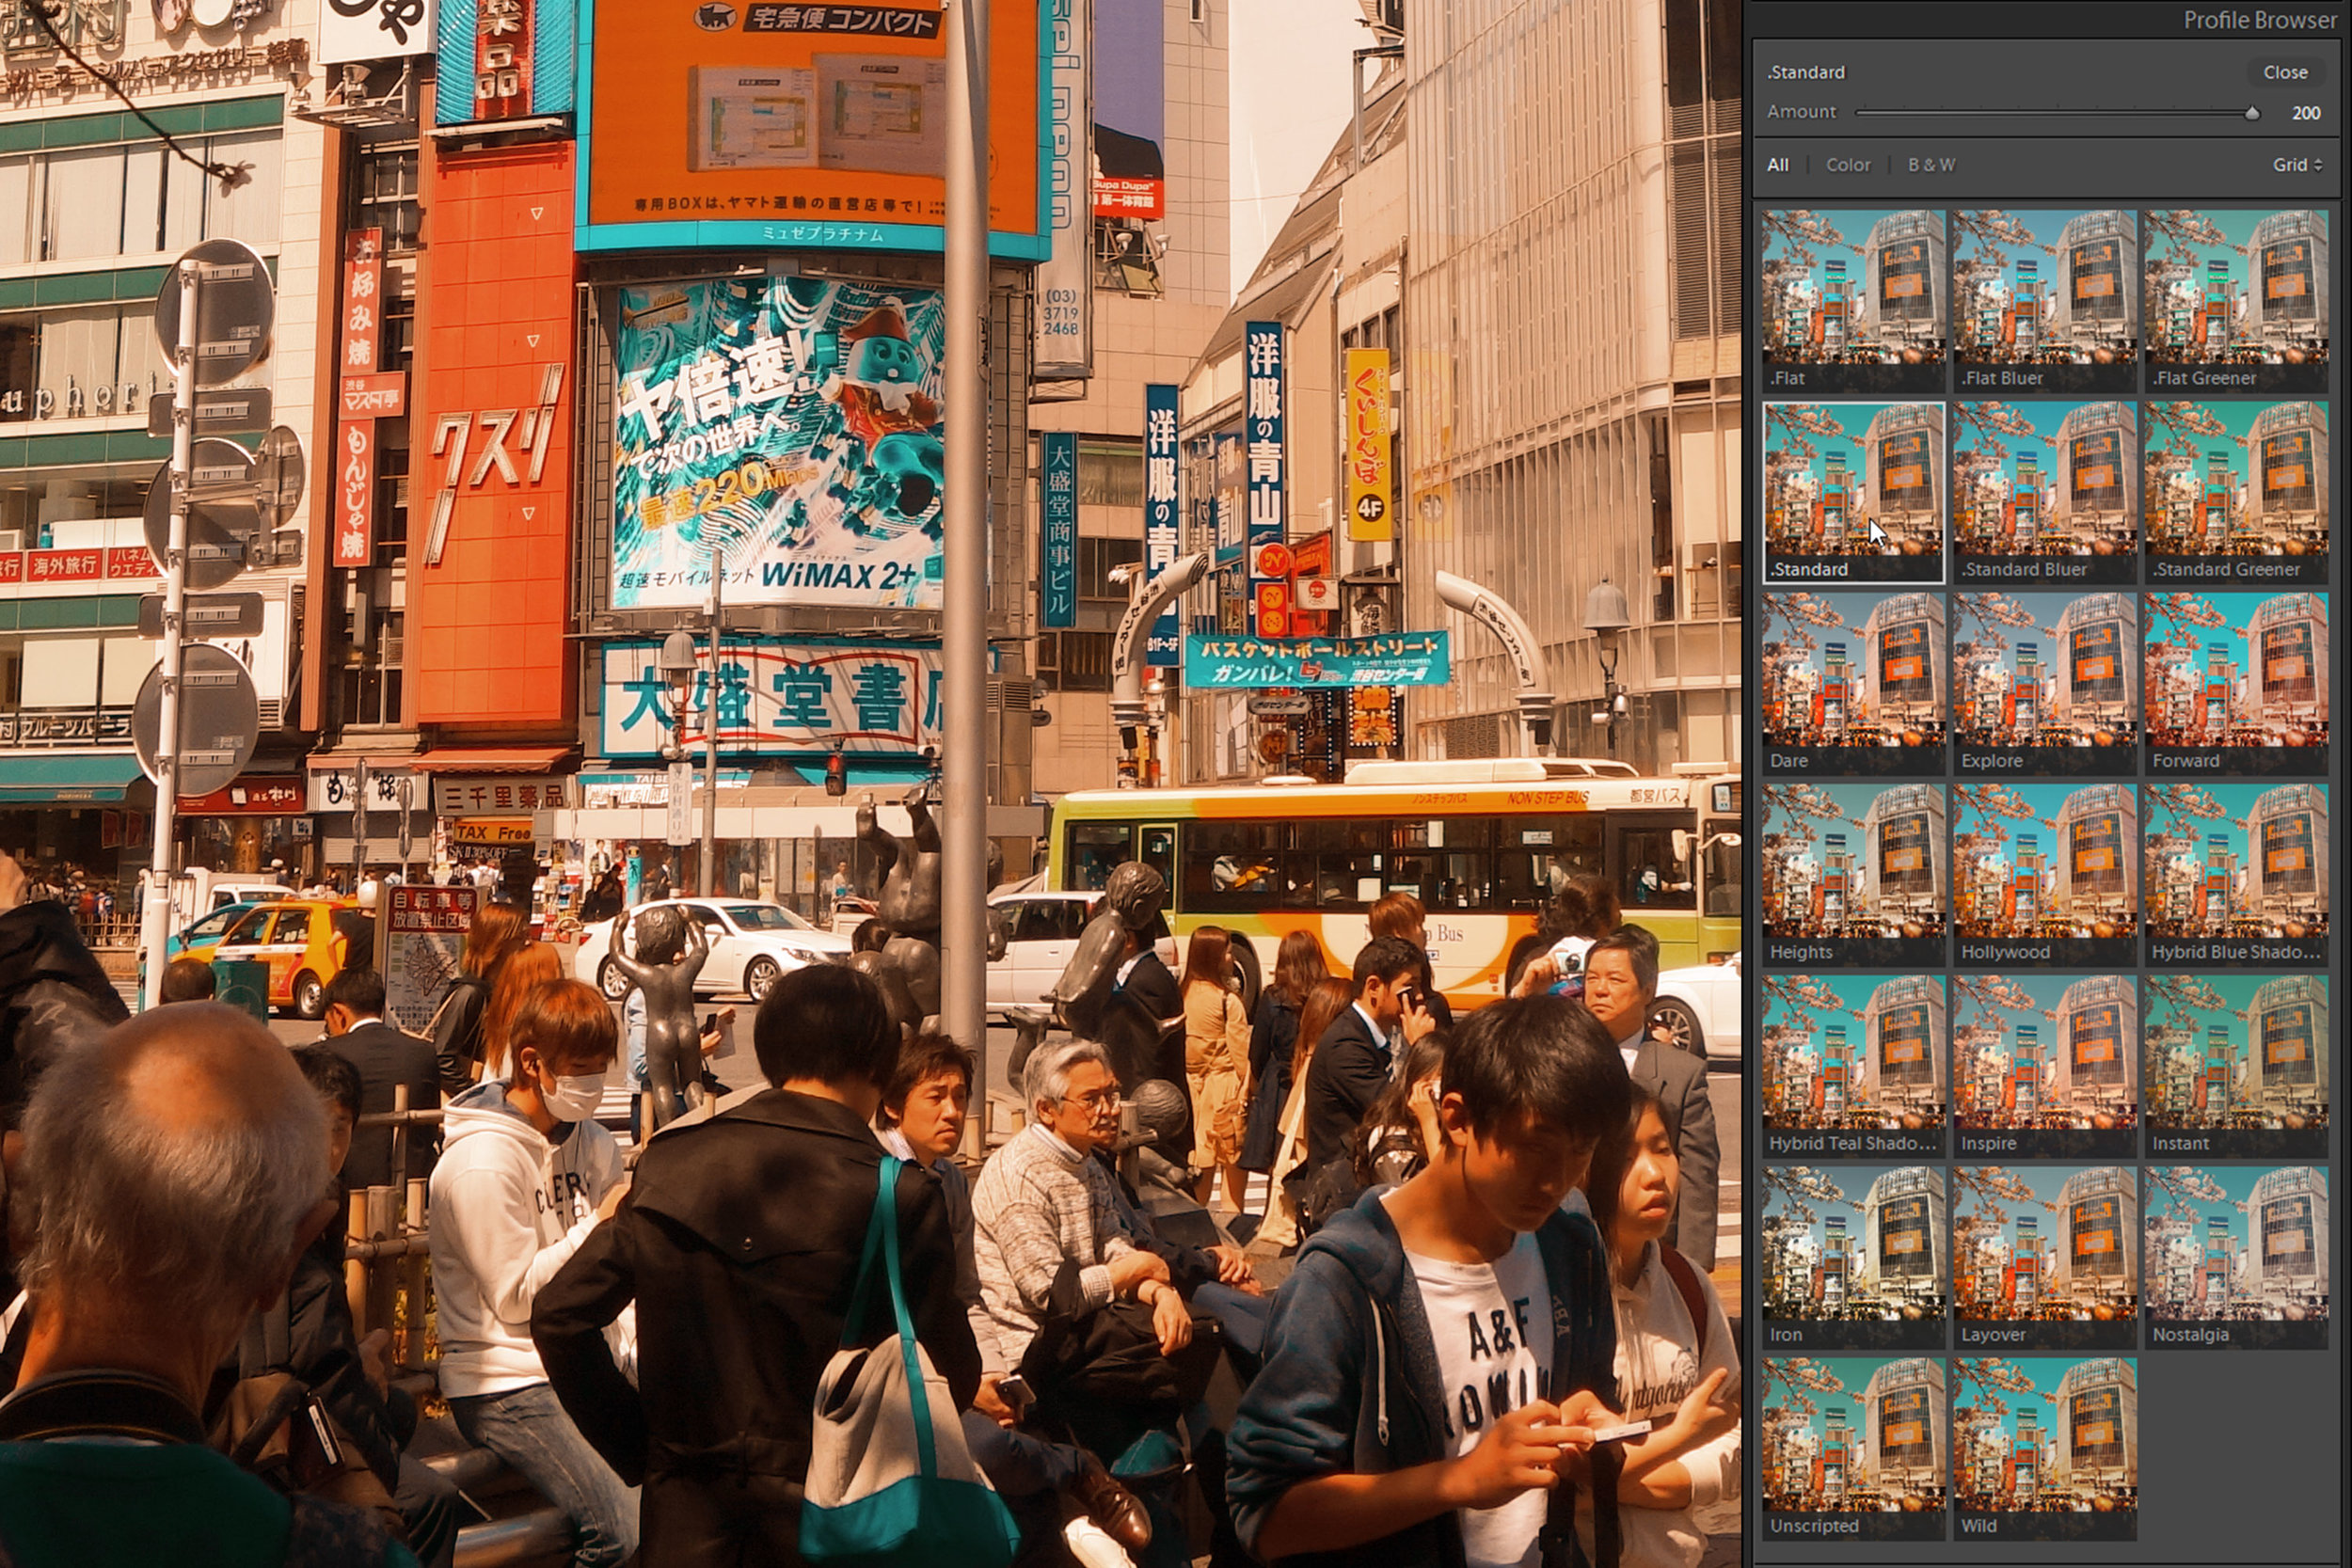 Super-Fast Lightroom CC Profiles - Futureproof your product and give your customers the fastest experience. Unlike presets, profiles use an intuitive interface with render speeds up to 10x faster.